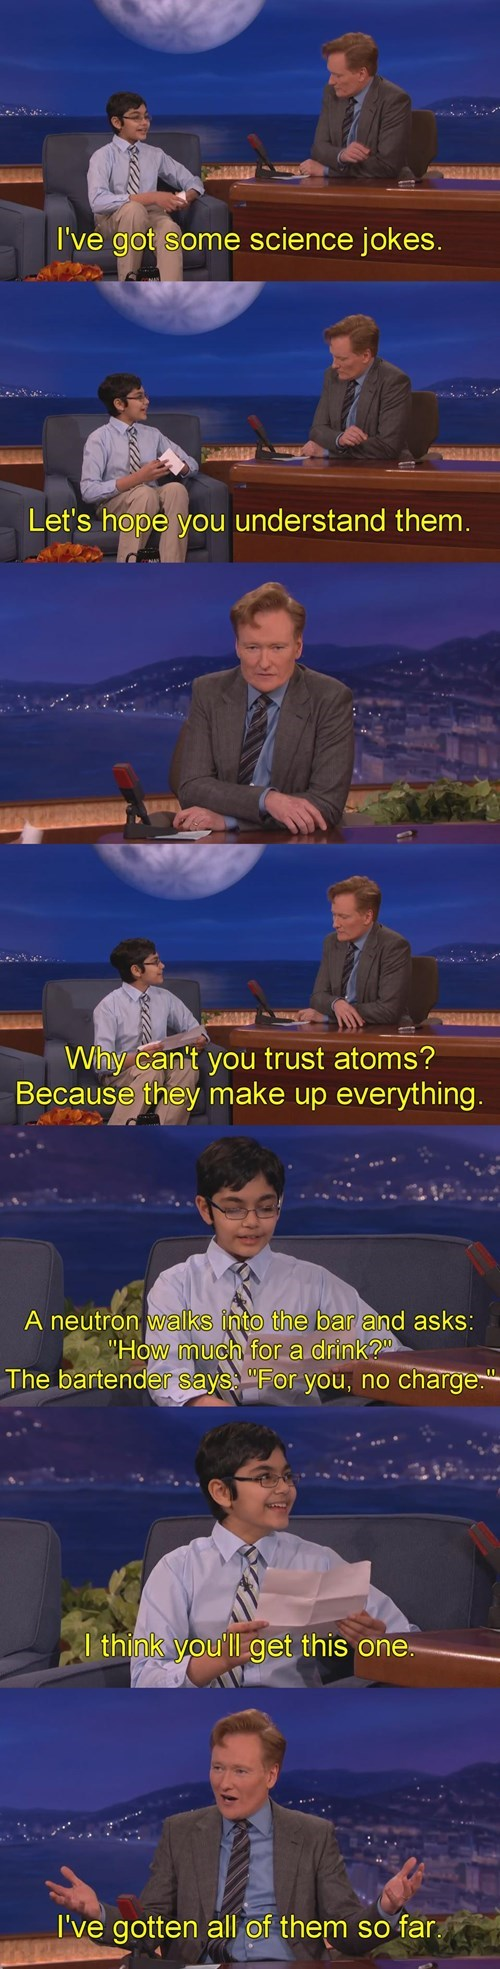 conan obrien listens to a kid telling science jokes